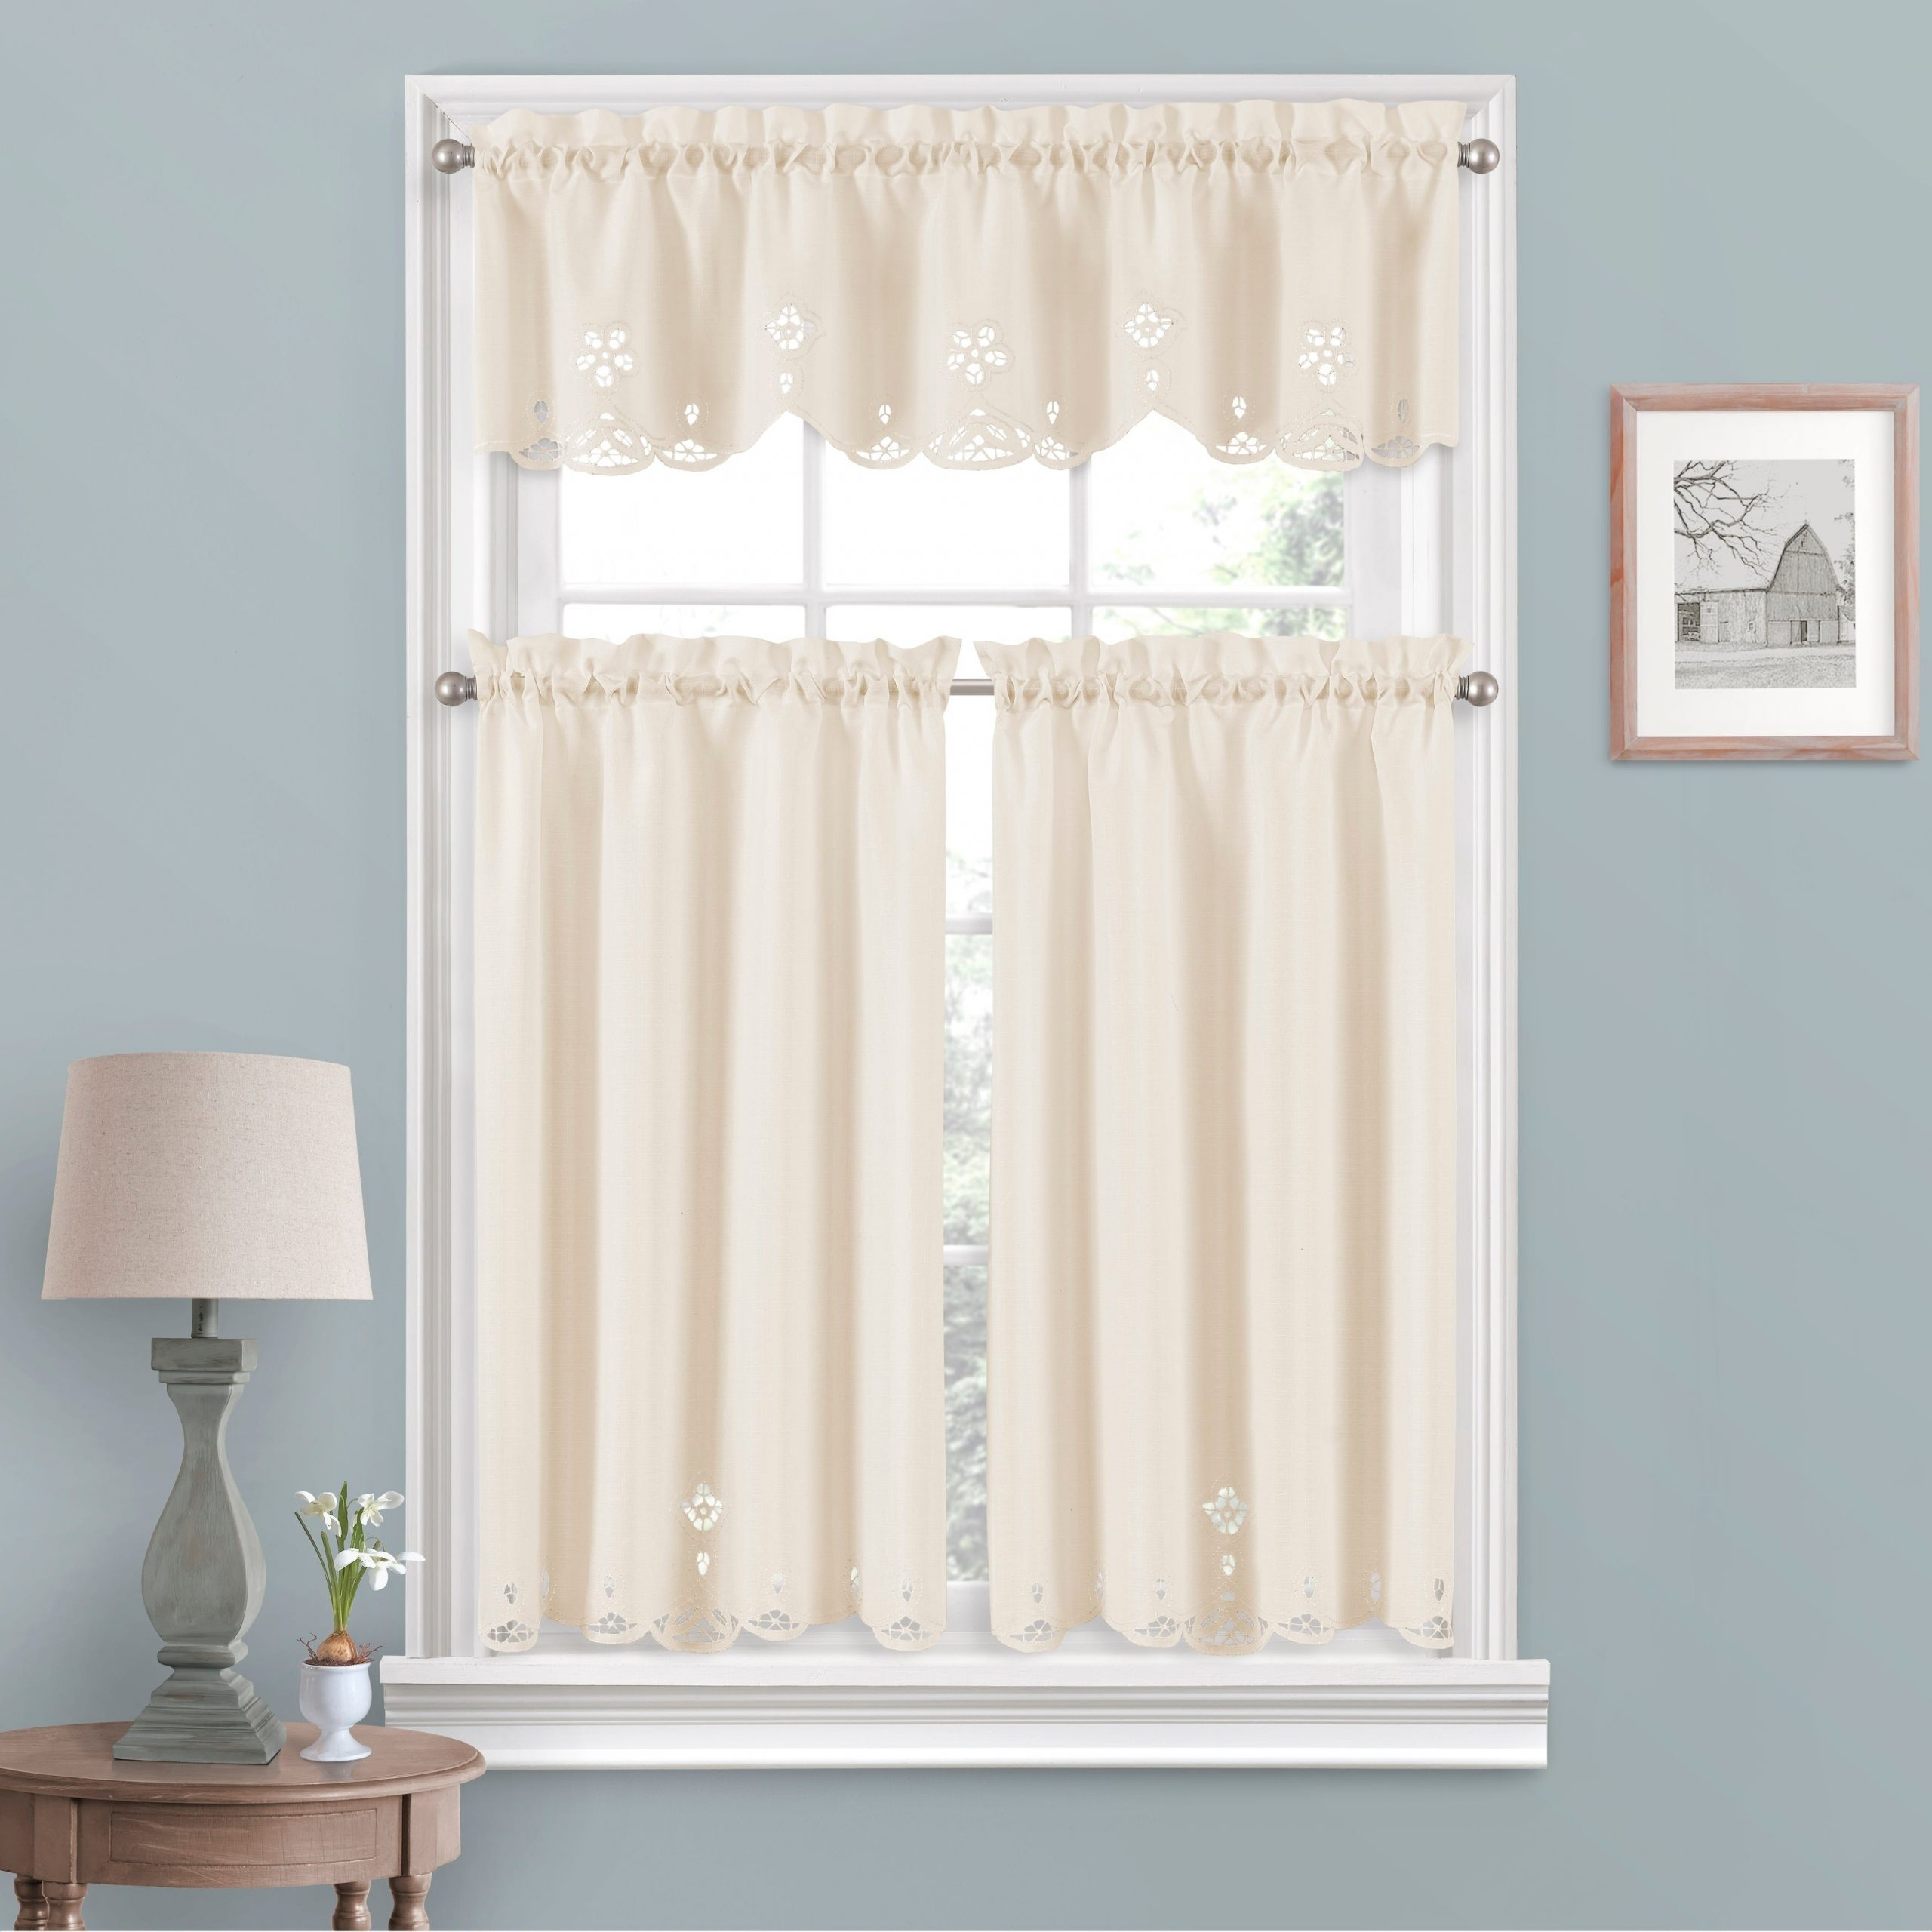 Vue Window Solutions Elaine Tier Pair In White Tone On Tone Raised Microcheck Semisheer Window Curtain Pieces (View 6 of 20)